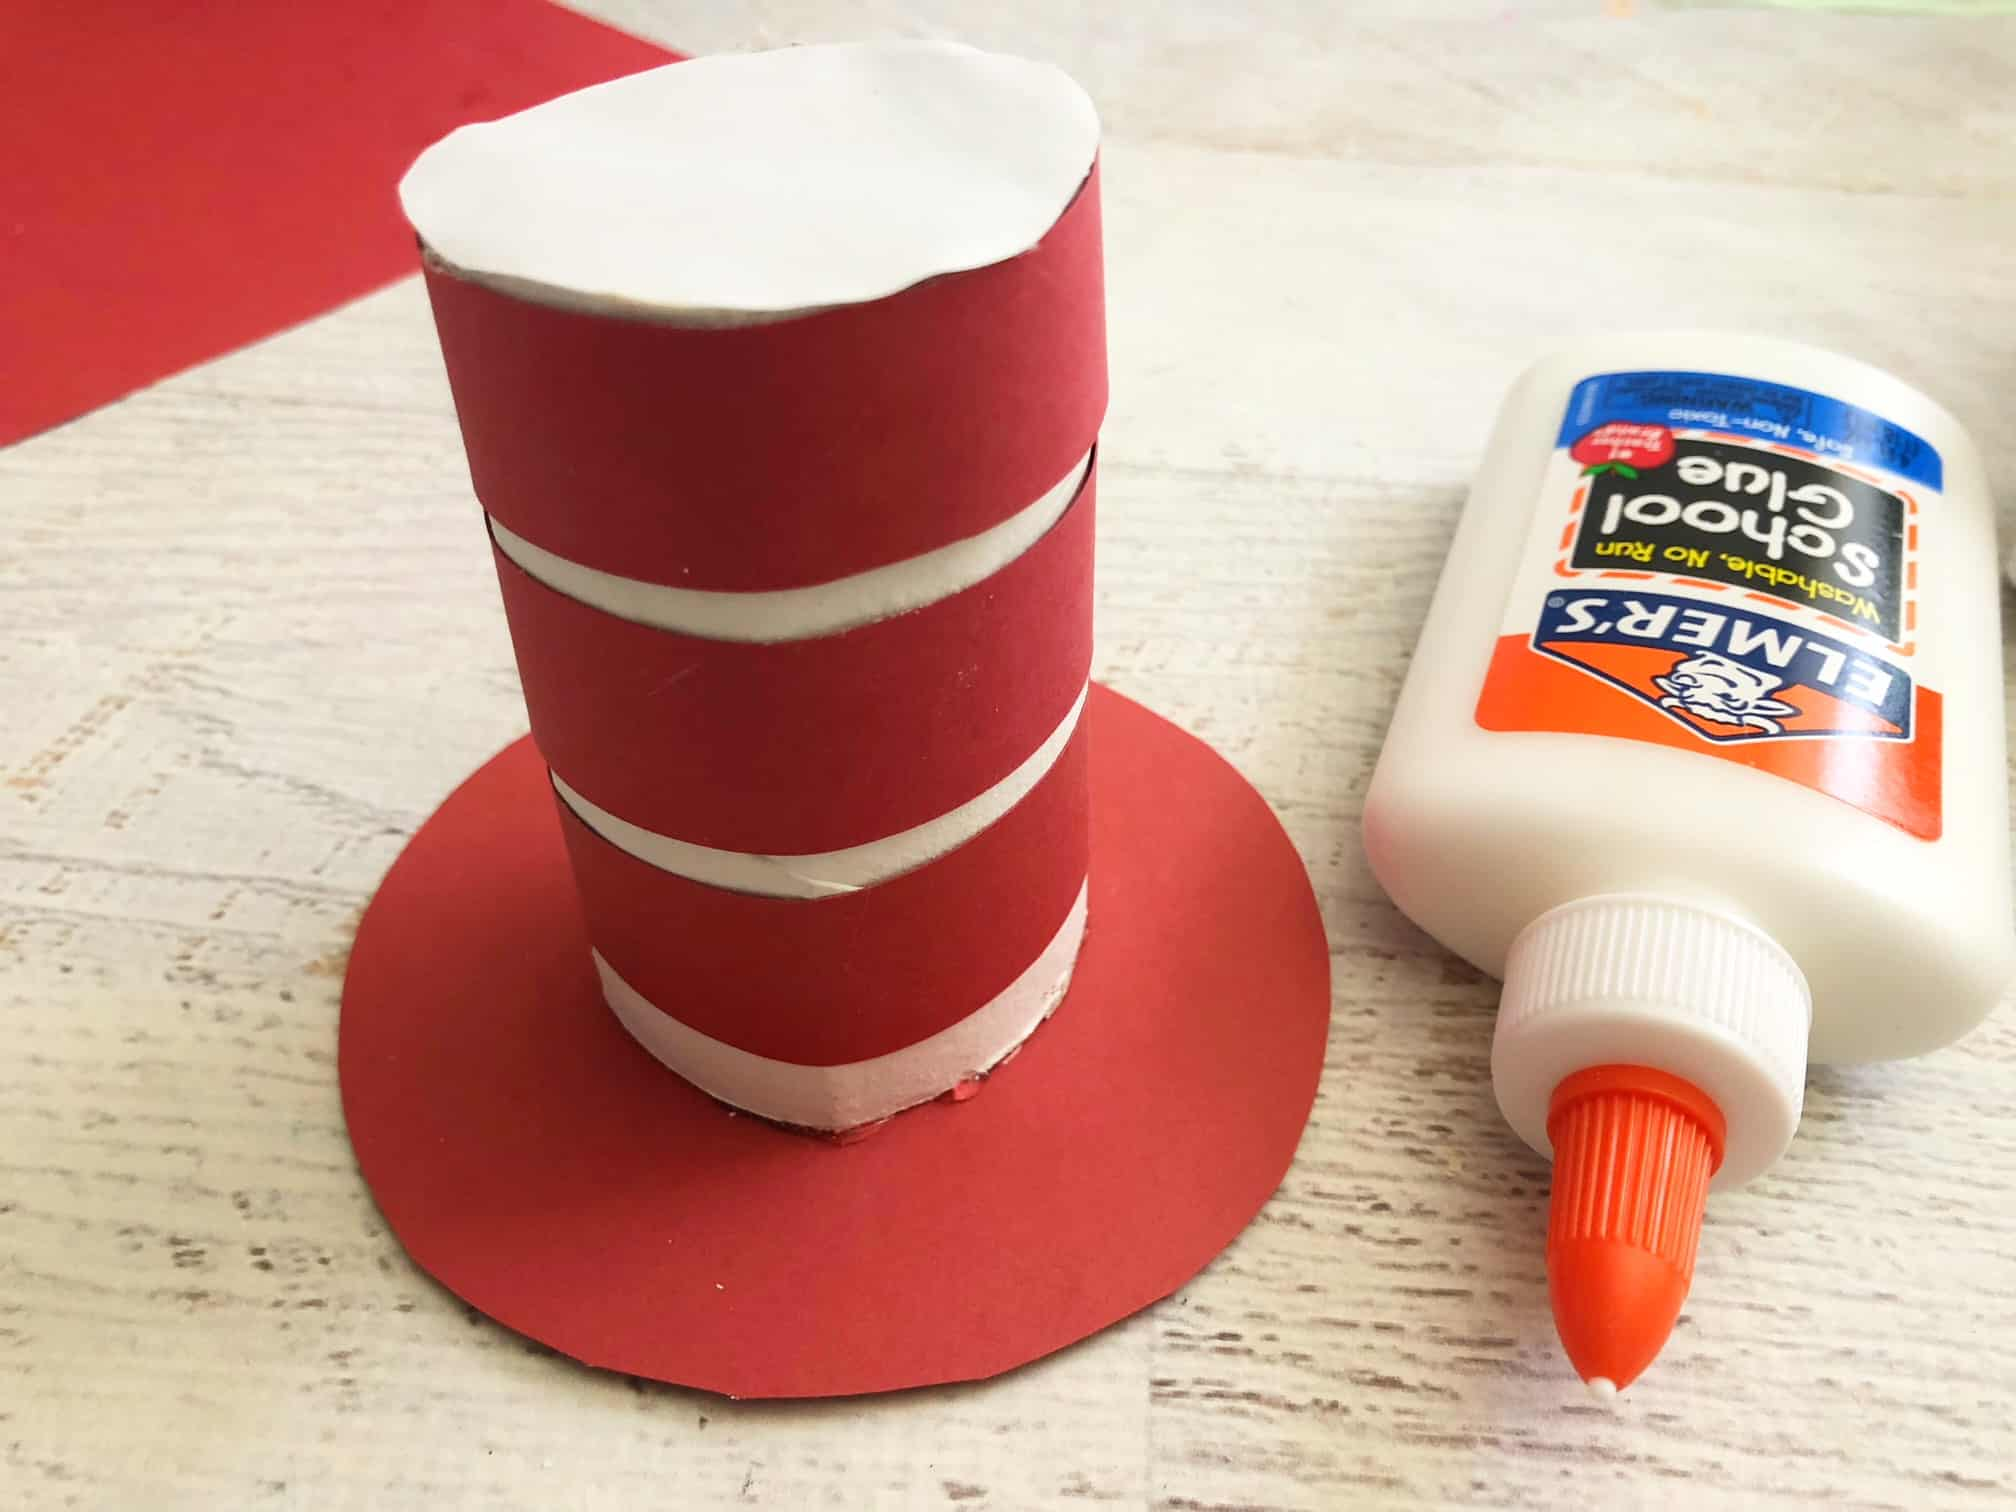 Who doesn't know the legendary book Cat in The Hat written by Dr. Seuss? The red and white hat is very famous and cute. Today I am glad to share a fabulous Cat in The Hat craft for preschoolers and kindergartens.